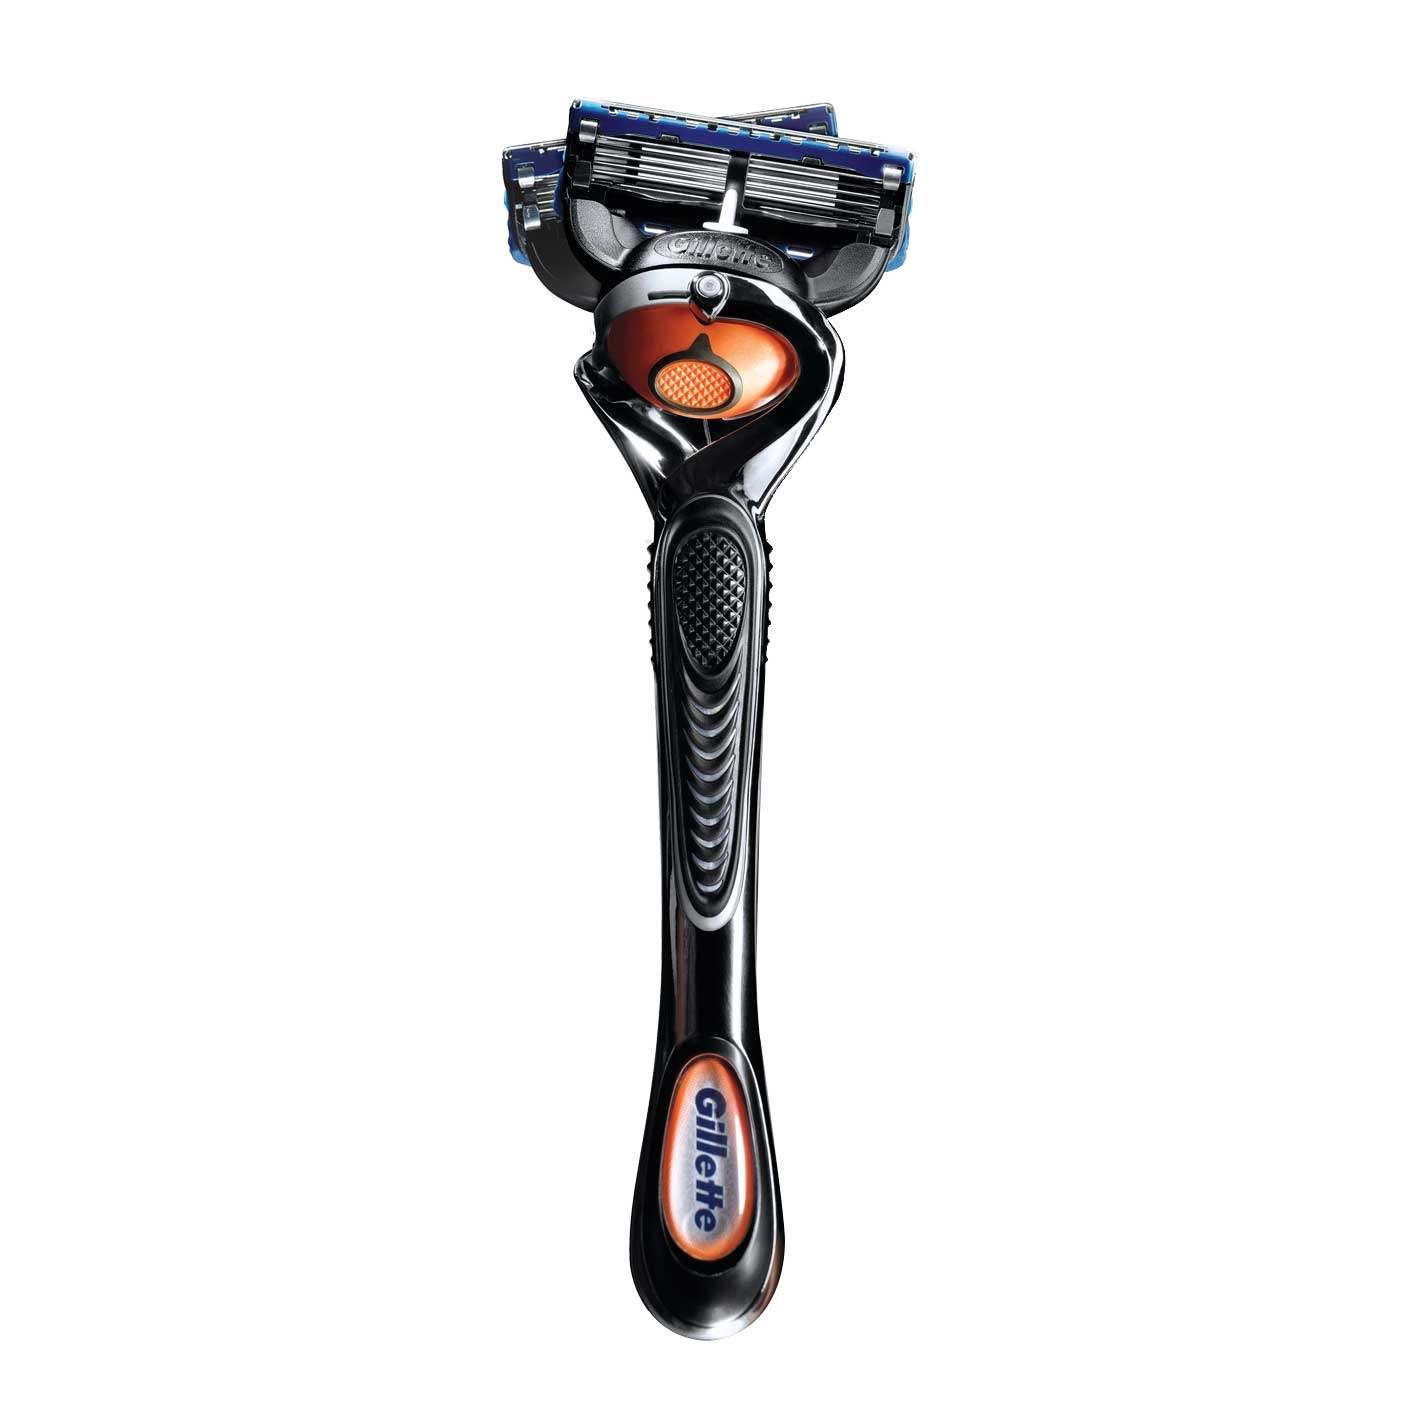 All Fusion razor blades fit all Fusion razors (with and without FlexBall Handle Technology) Gillette's best razor blades are 2X preferred when used with the Fusion ProGlide Power Razor with FlexBall Handle Technology (overall preference vs. former ProGlide, among ProGlide users)/5().